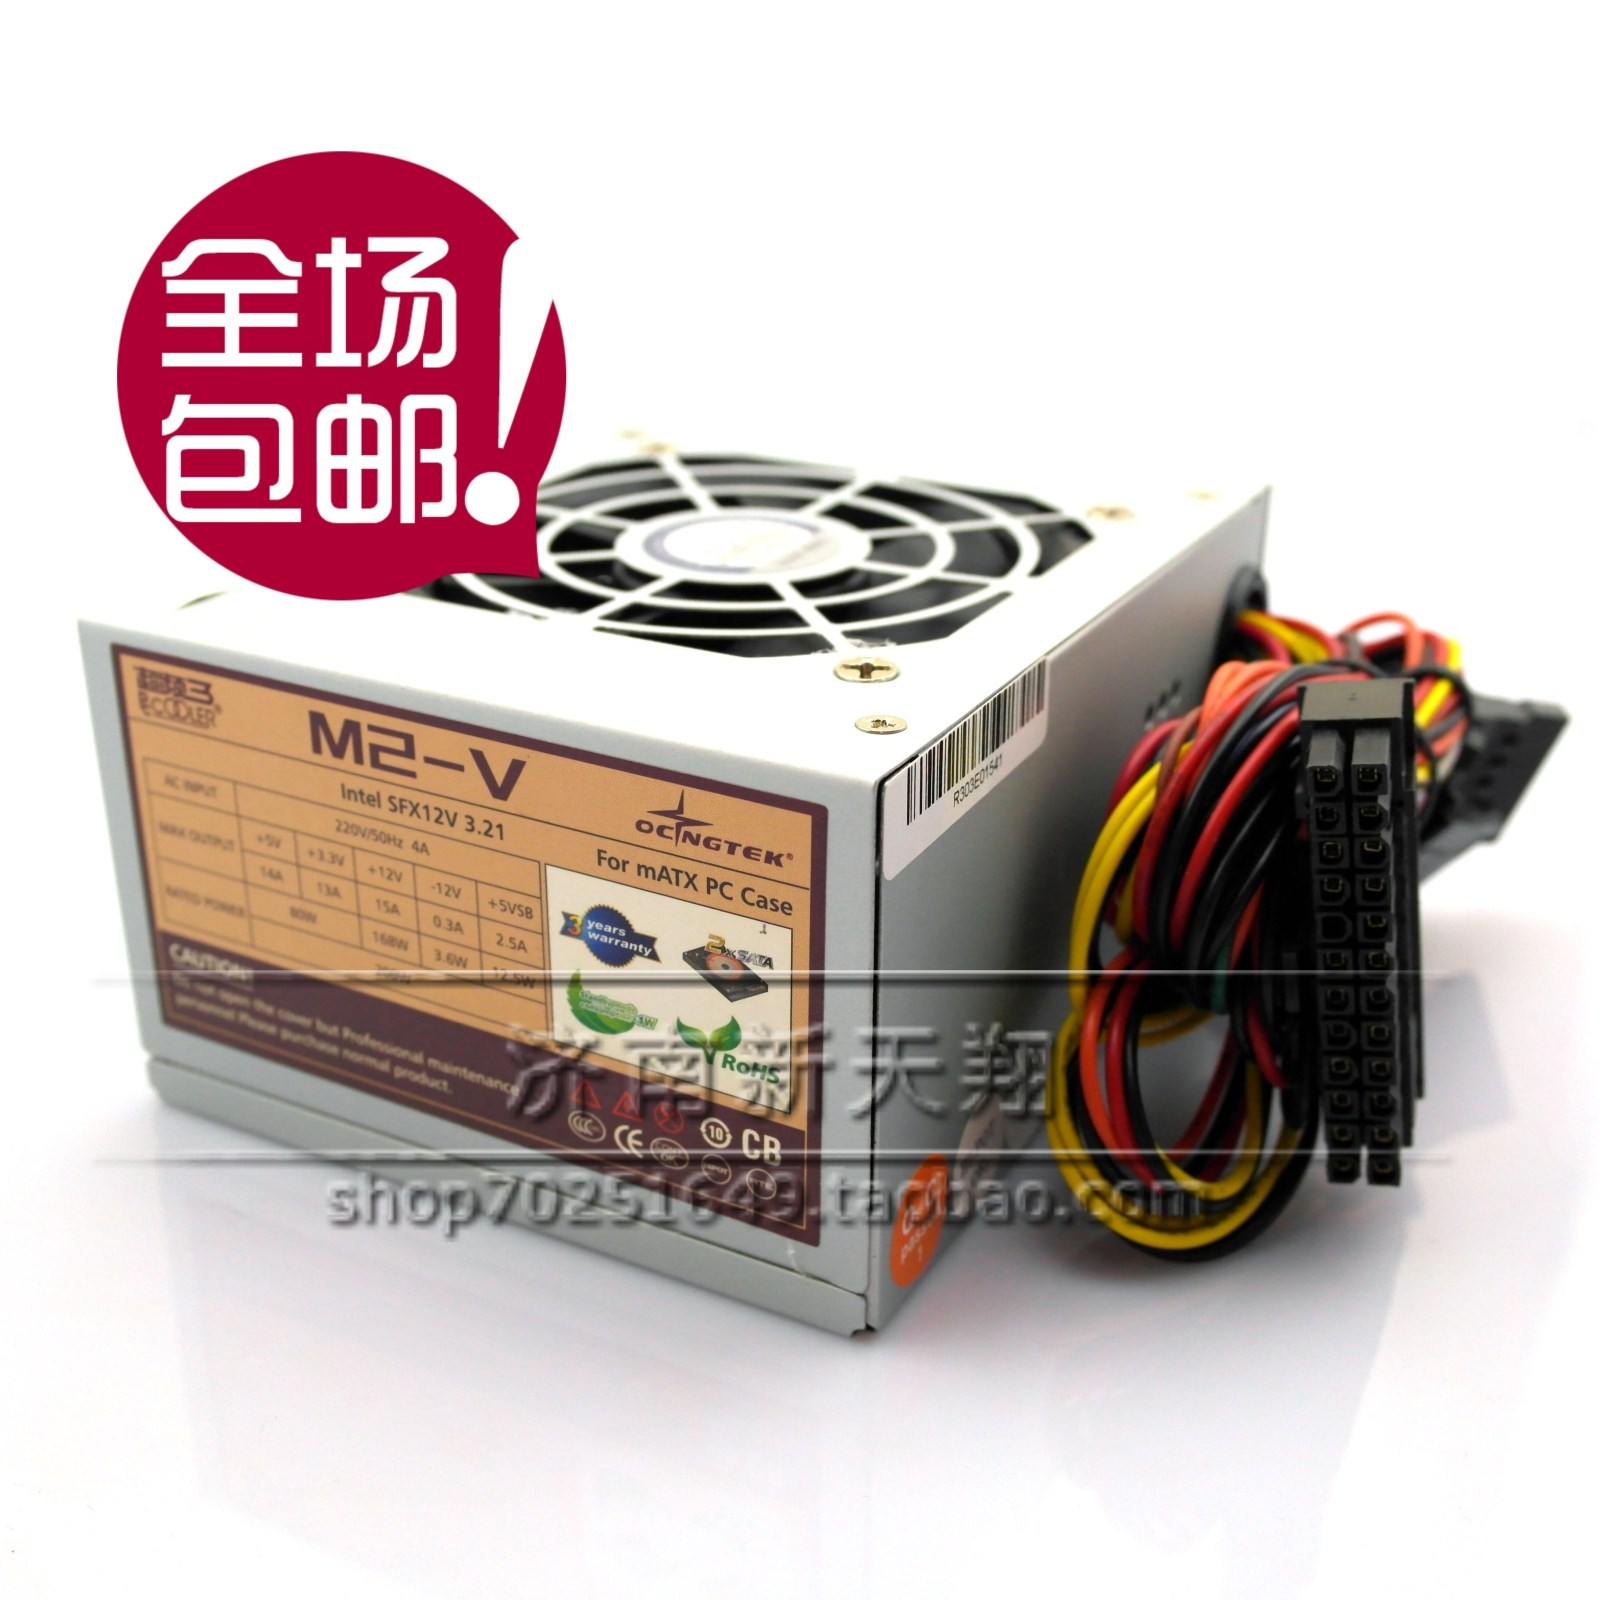 Authentic package: overclocking 3, m2-V model chassis, power mute, cooling experts